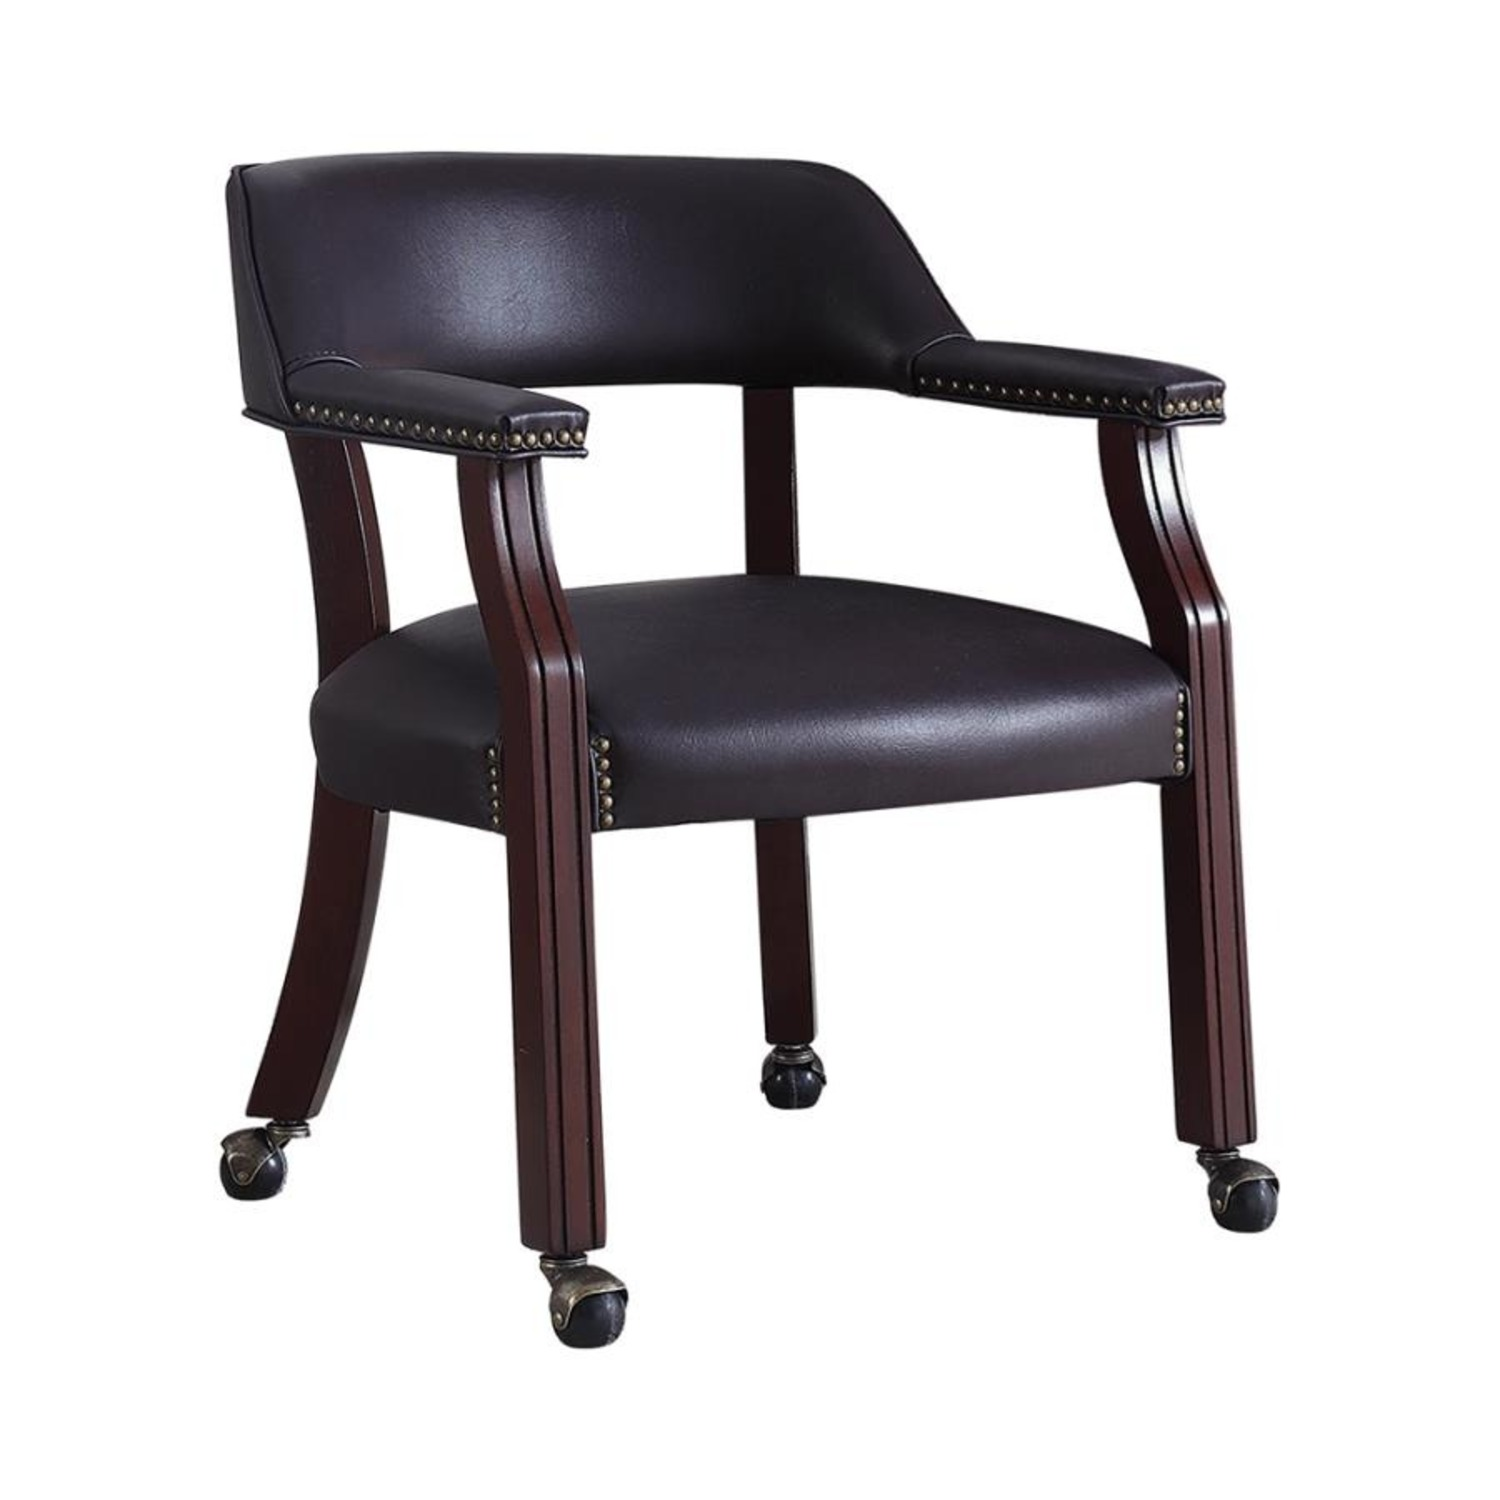 Guest Chair In Burgundy Leatherette Finish - image-0